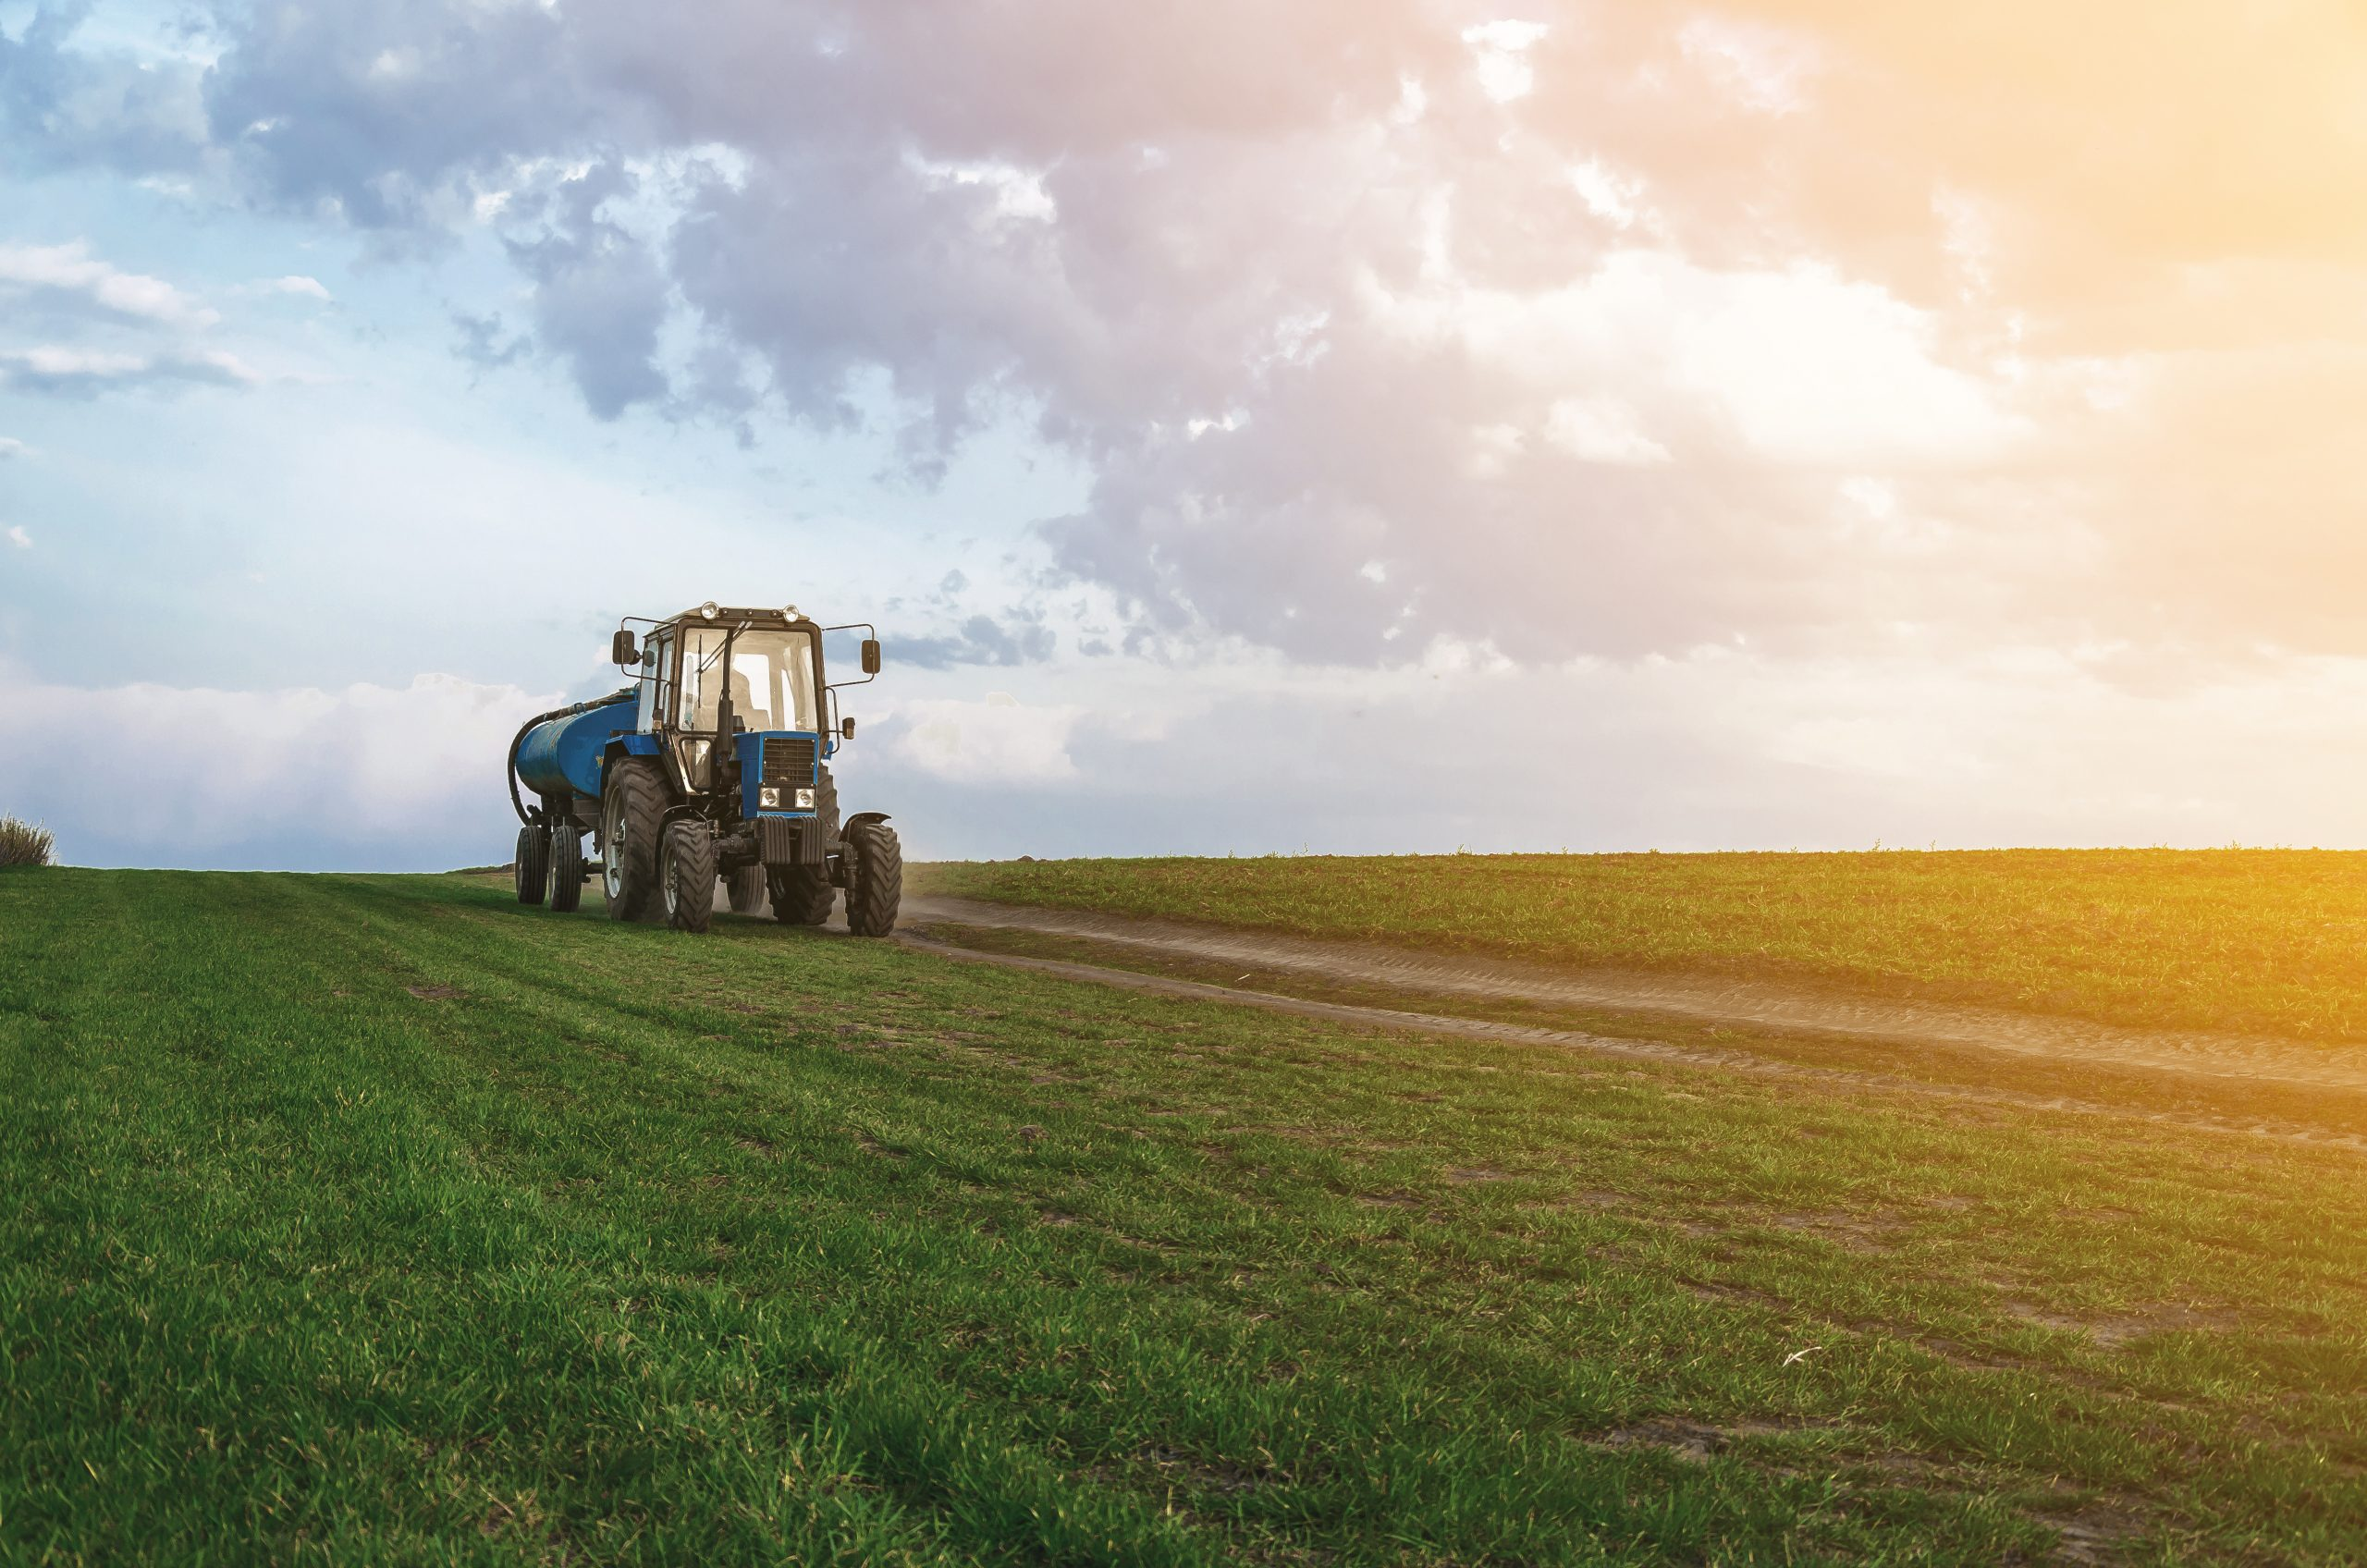 tractor driving on a freshly fertilized agricultural field